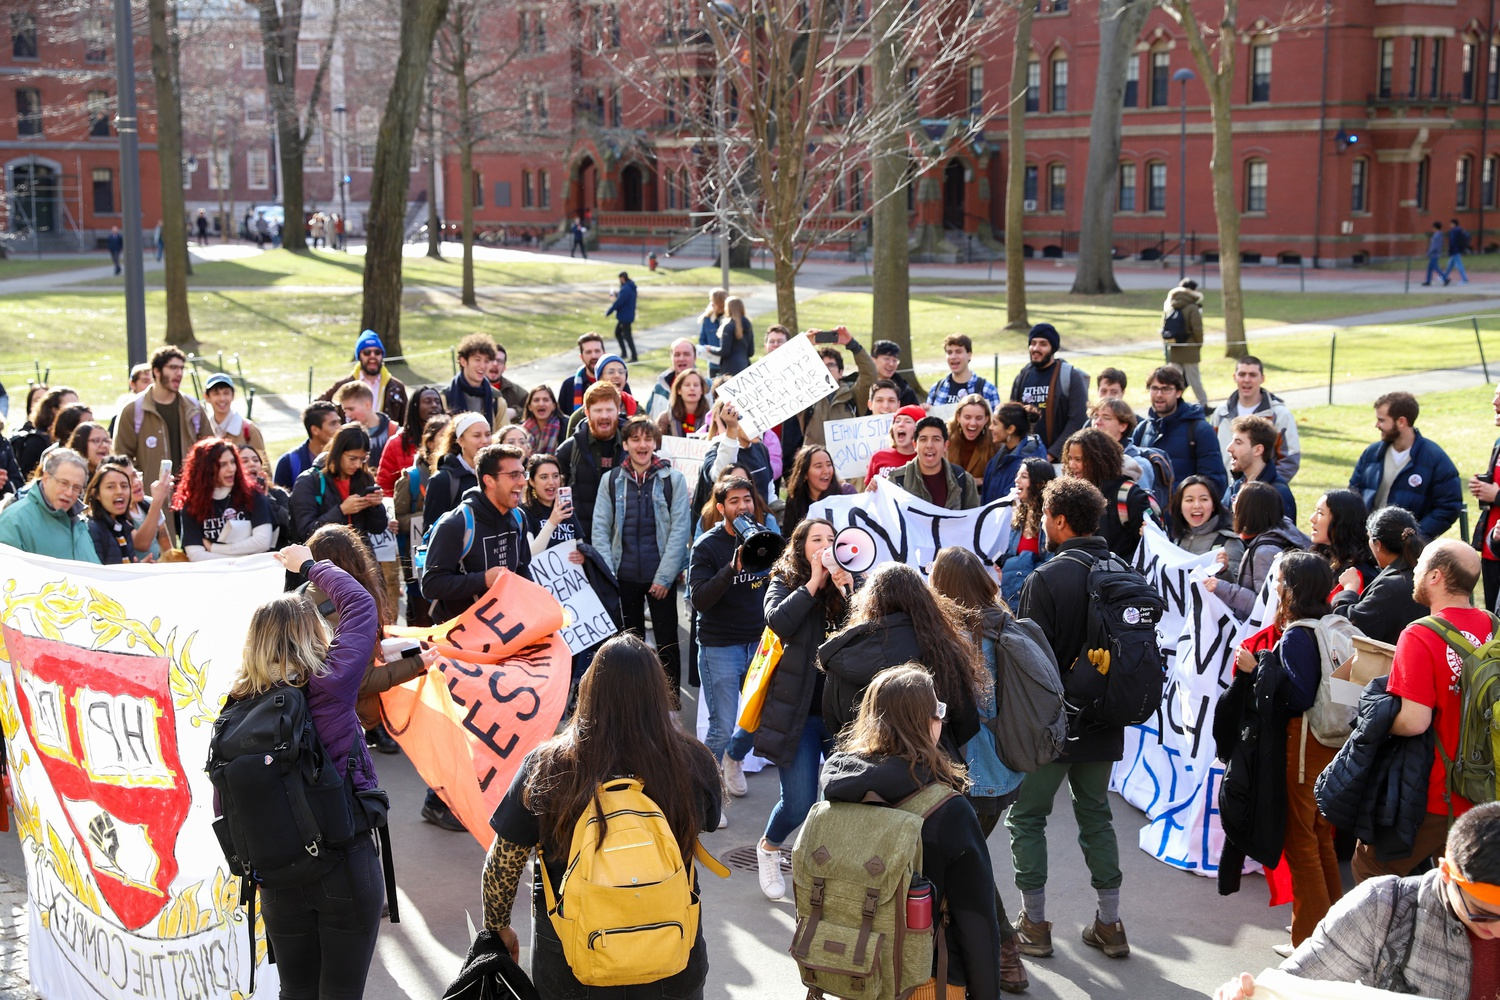 After hosting a demonstration in the Science Center Lobby, various student groups marched toward the John Harvard Statue to commence the Reorientation Rally.